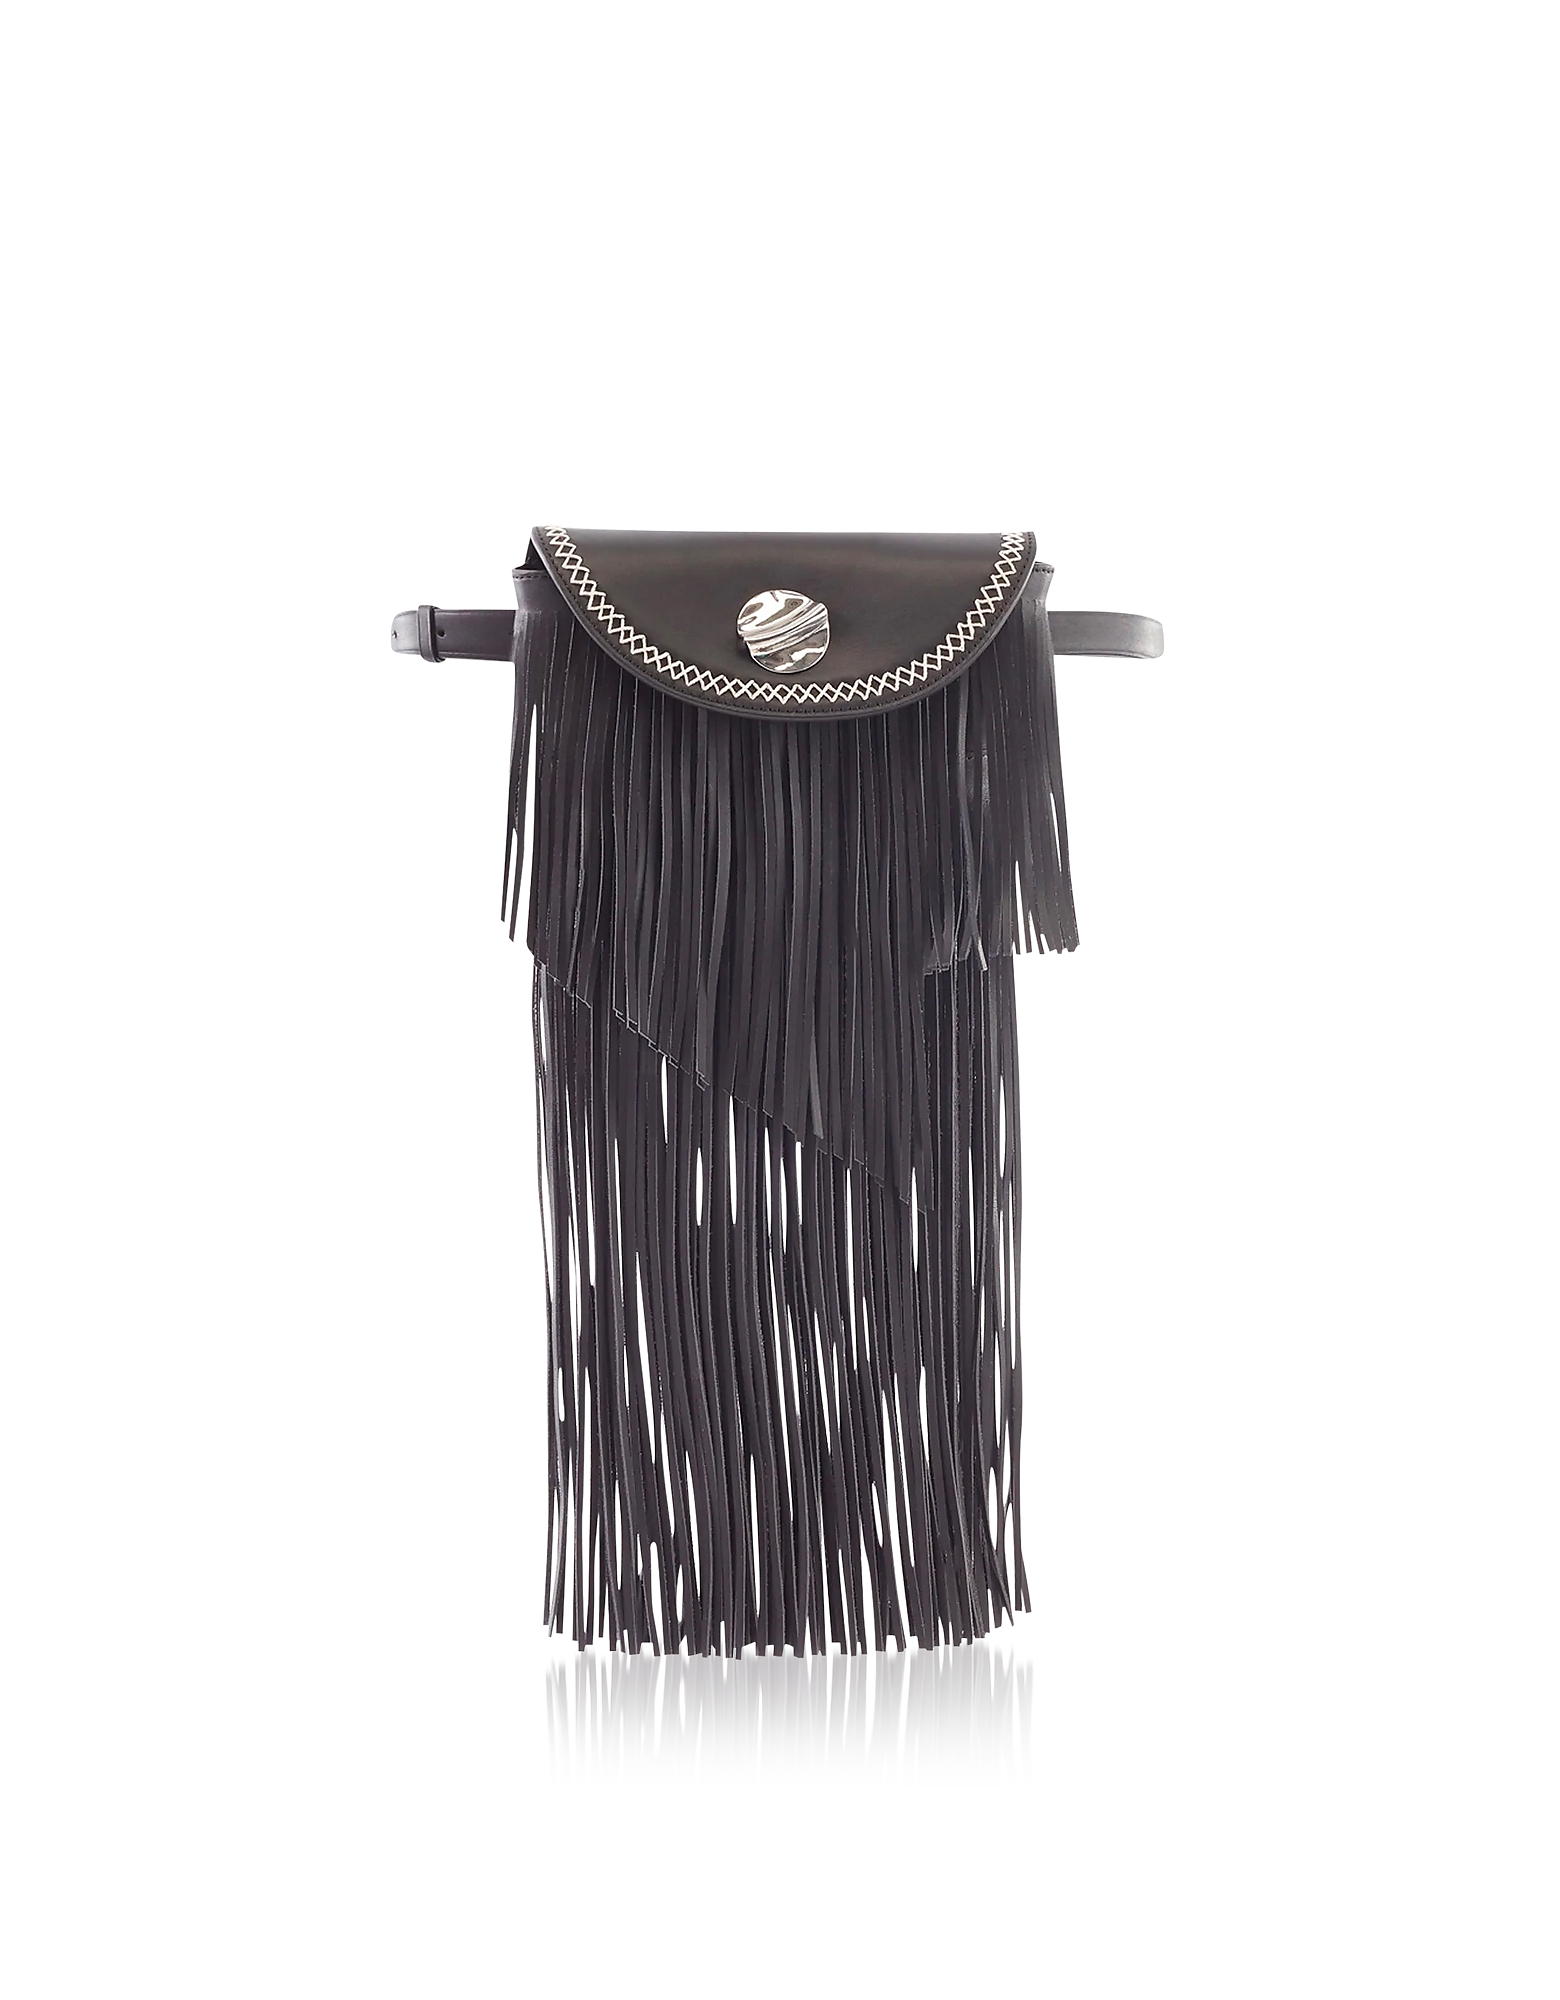 Hudson Sunglasses Case Crossbody Bag w/Fringe, Black